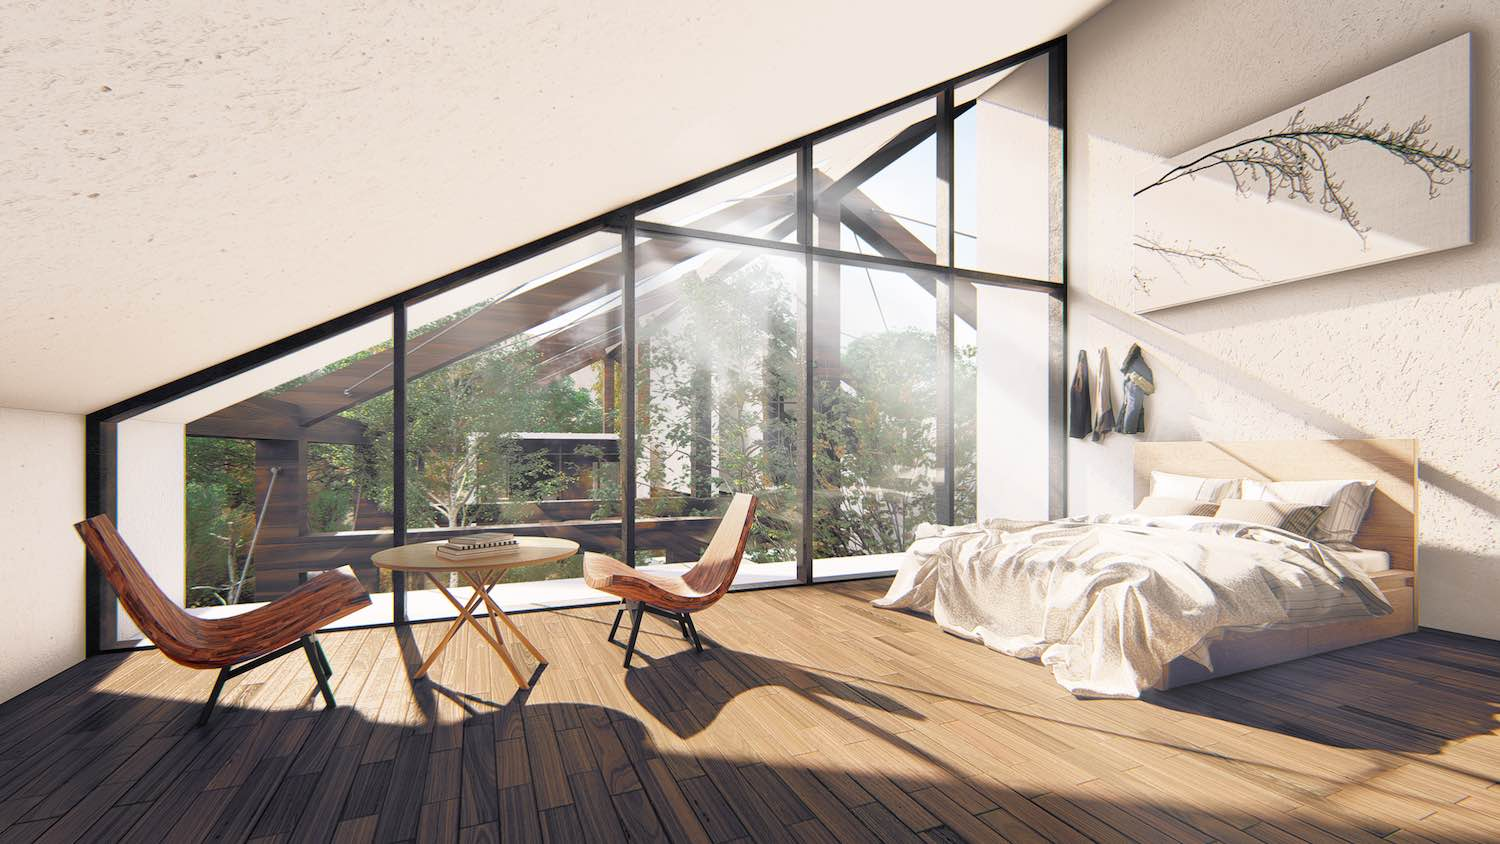 sun rays entering the master bedroom through large glass windows